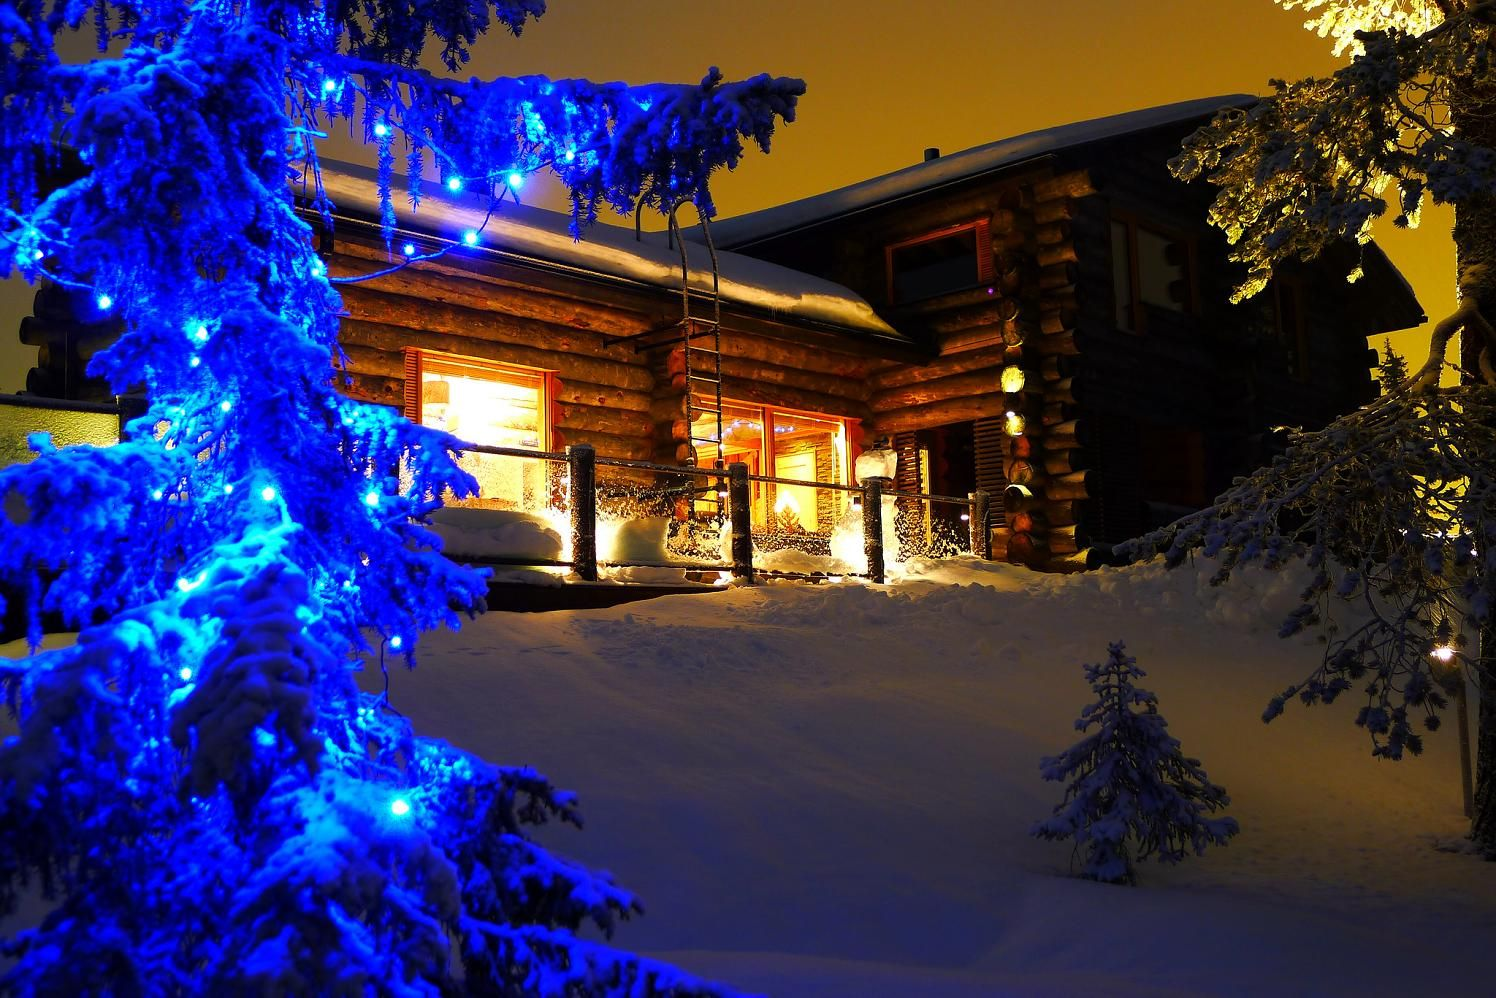 5 Winter Cottages To Rent With Friends Close To Toronto ...